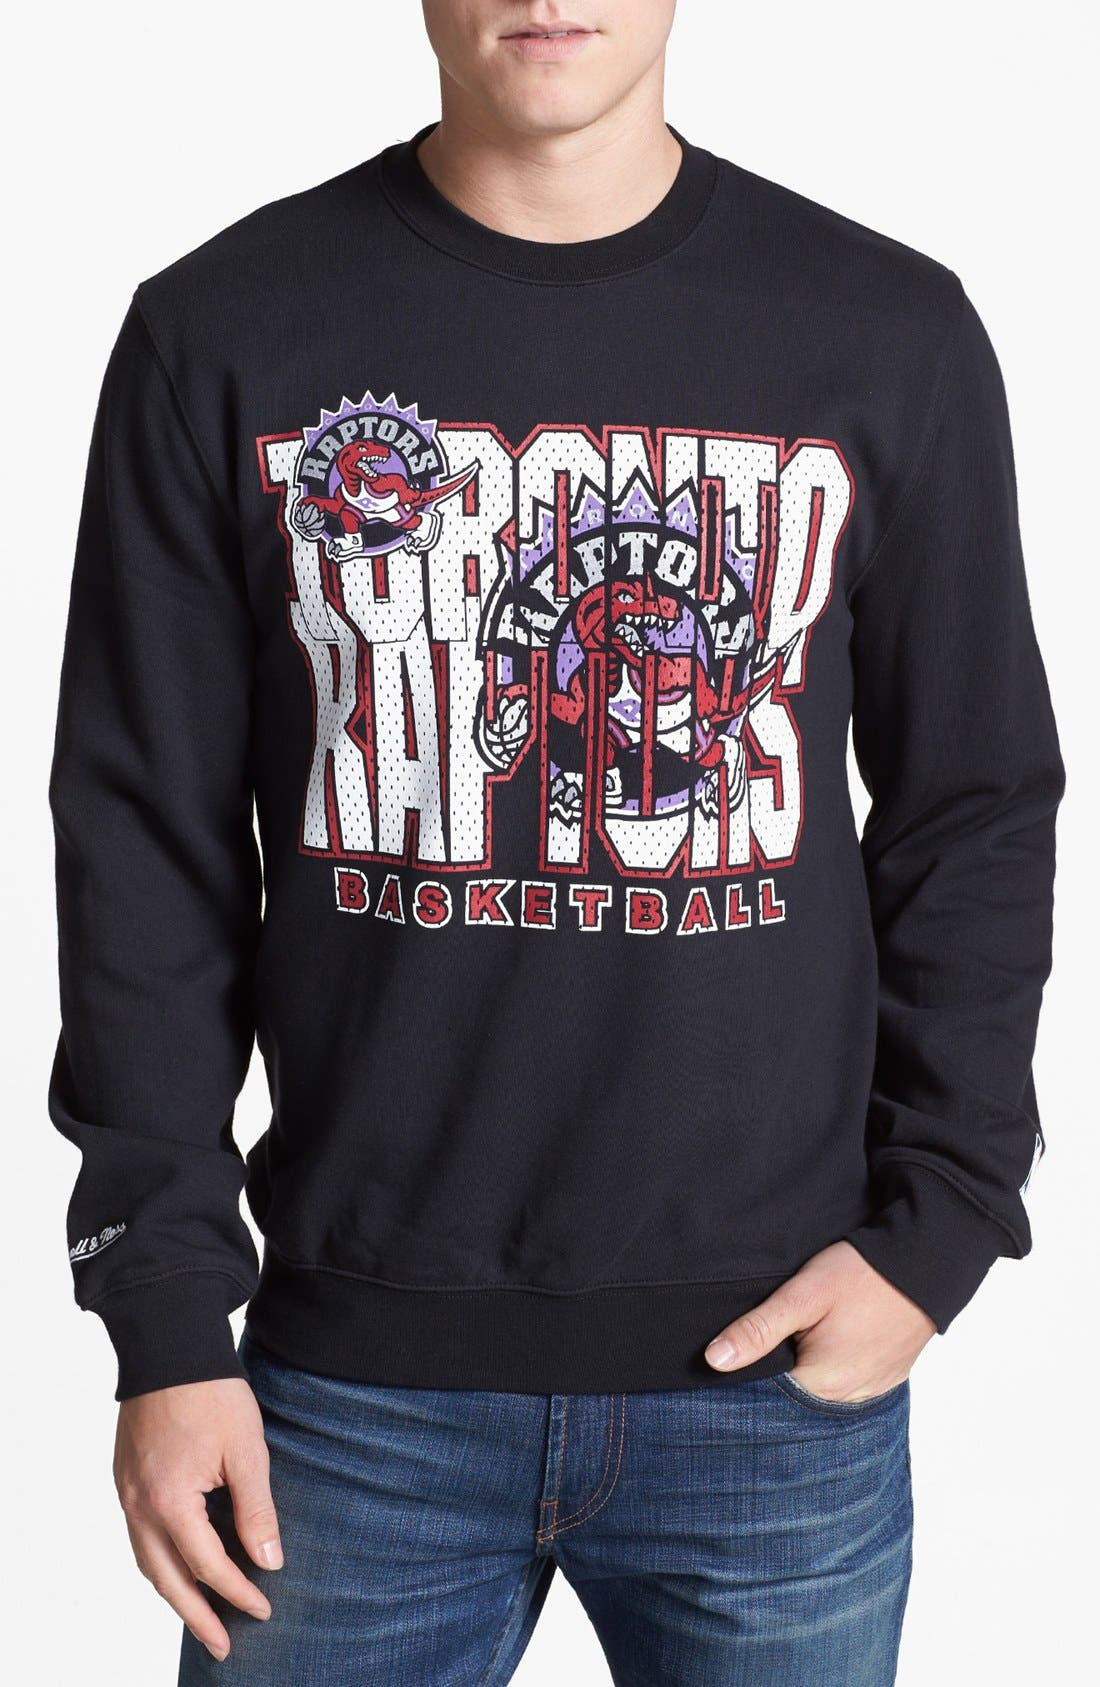 Alternate Image 1 Selected - Mitchell & Ness 'Toronto Raptors' Sweatshirt